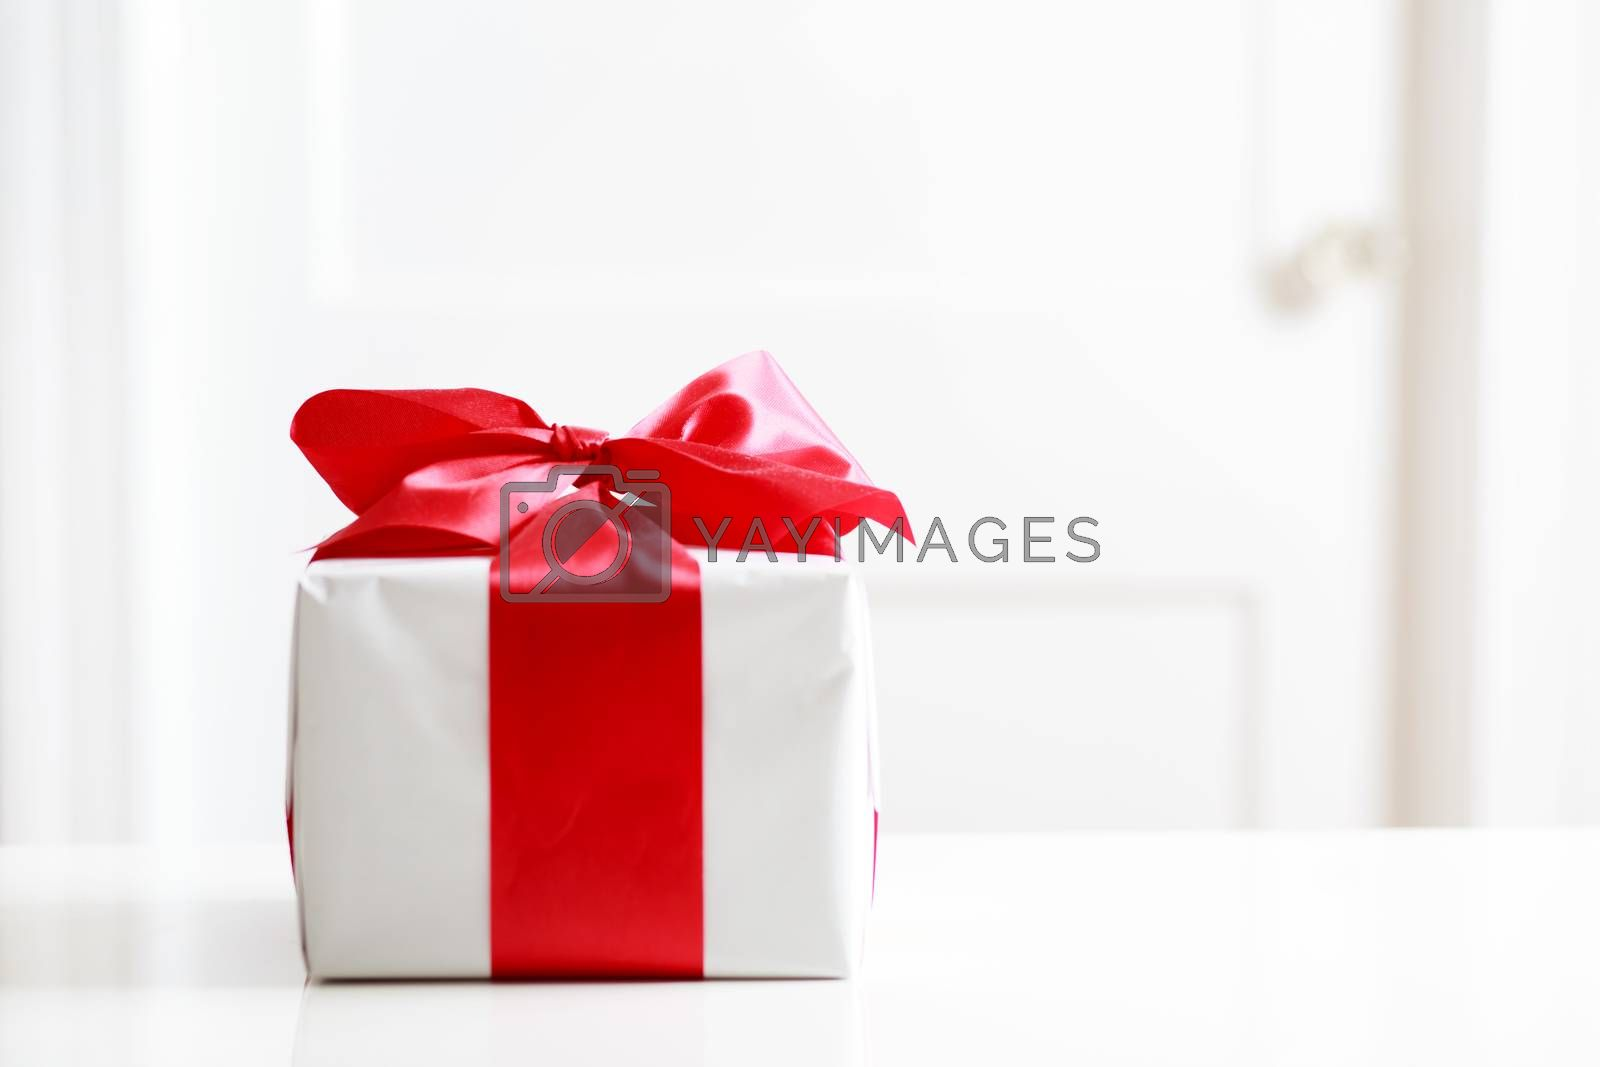 Royalty free image of Gift box on table by melpomene